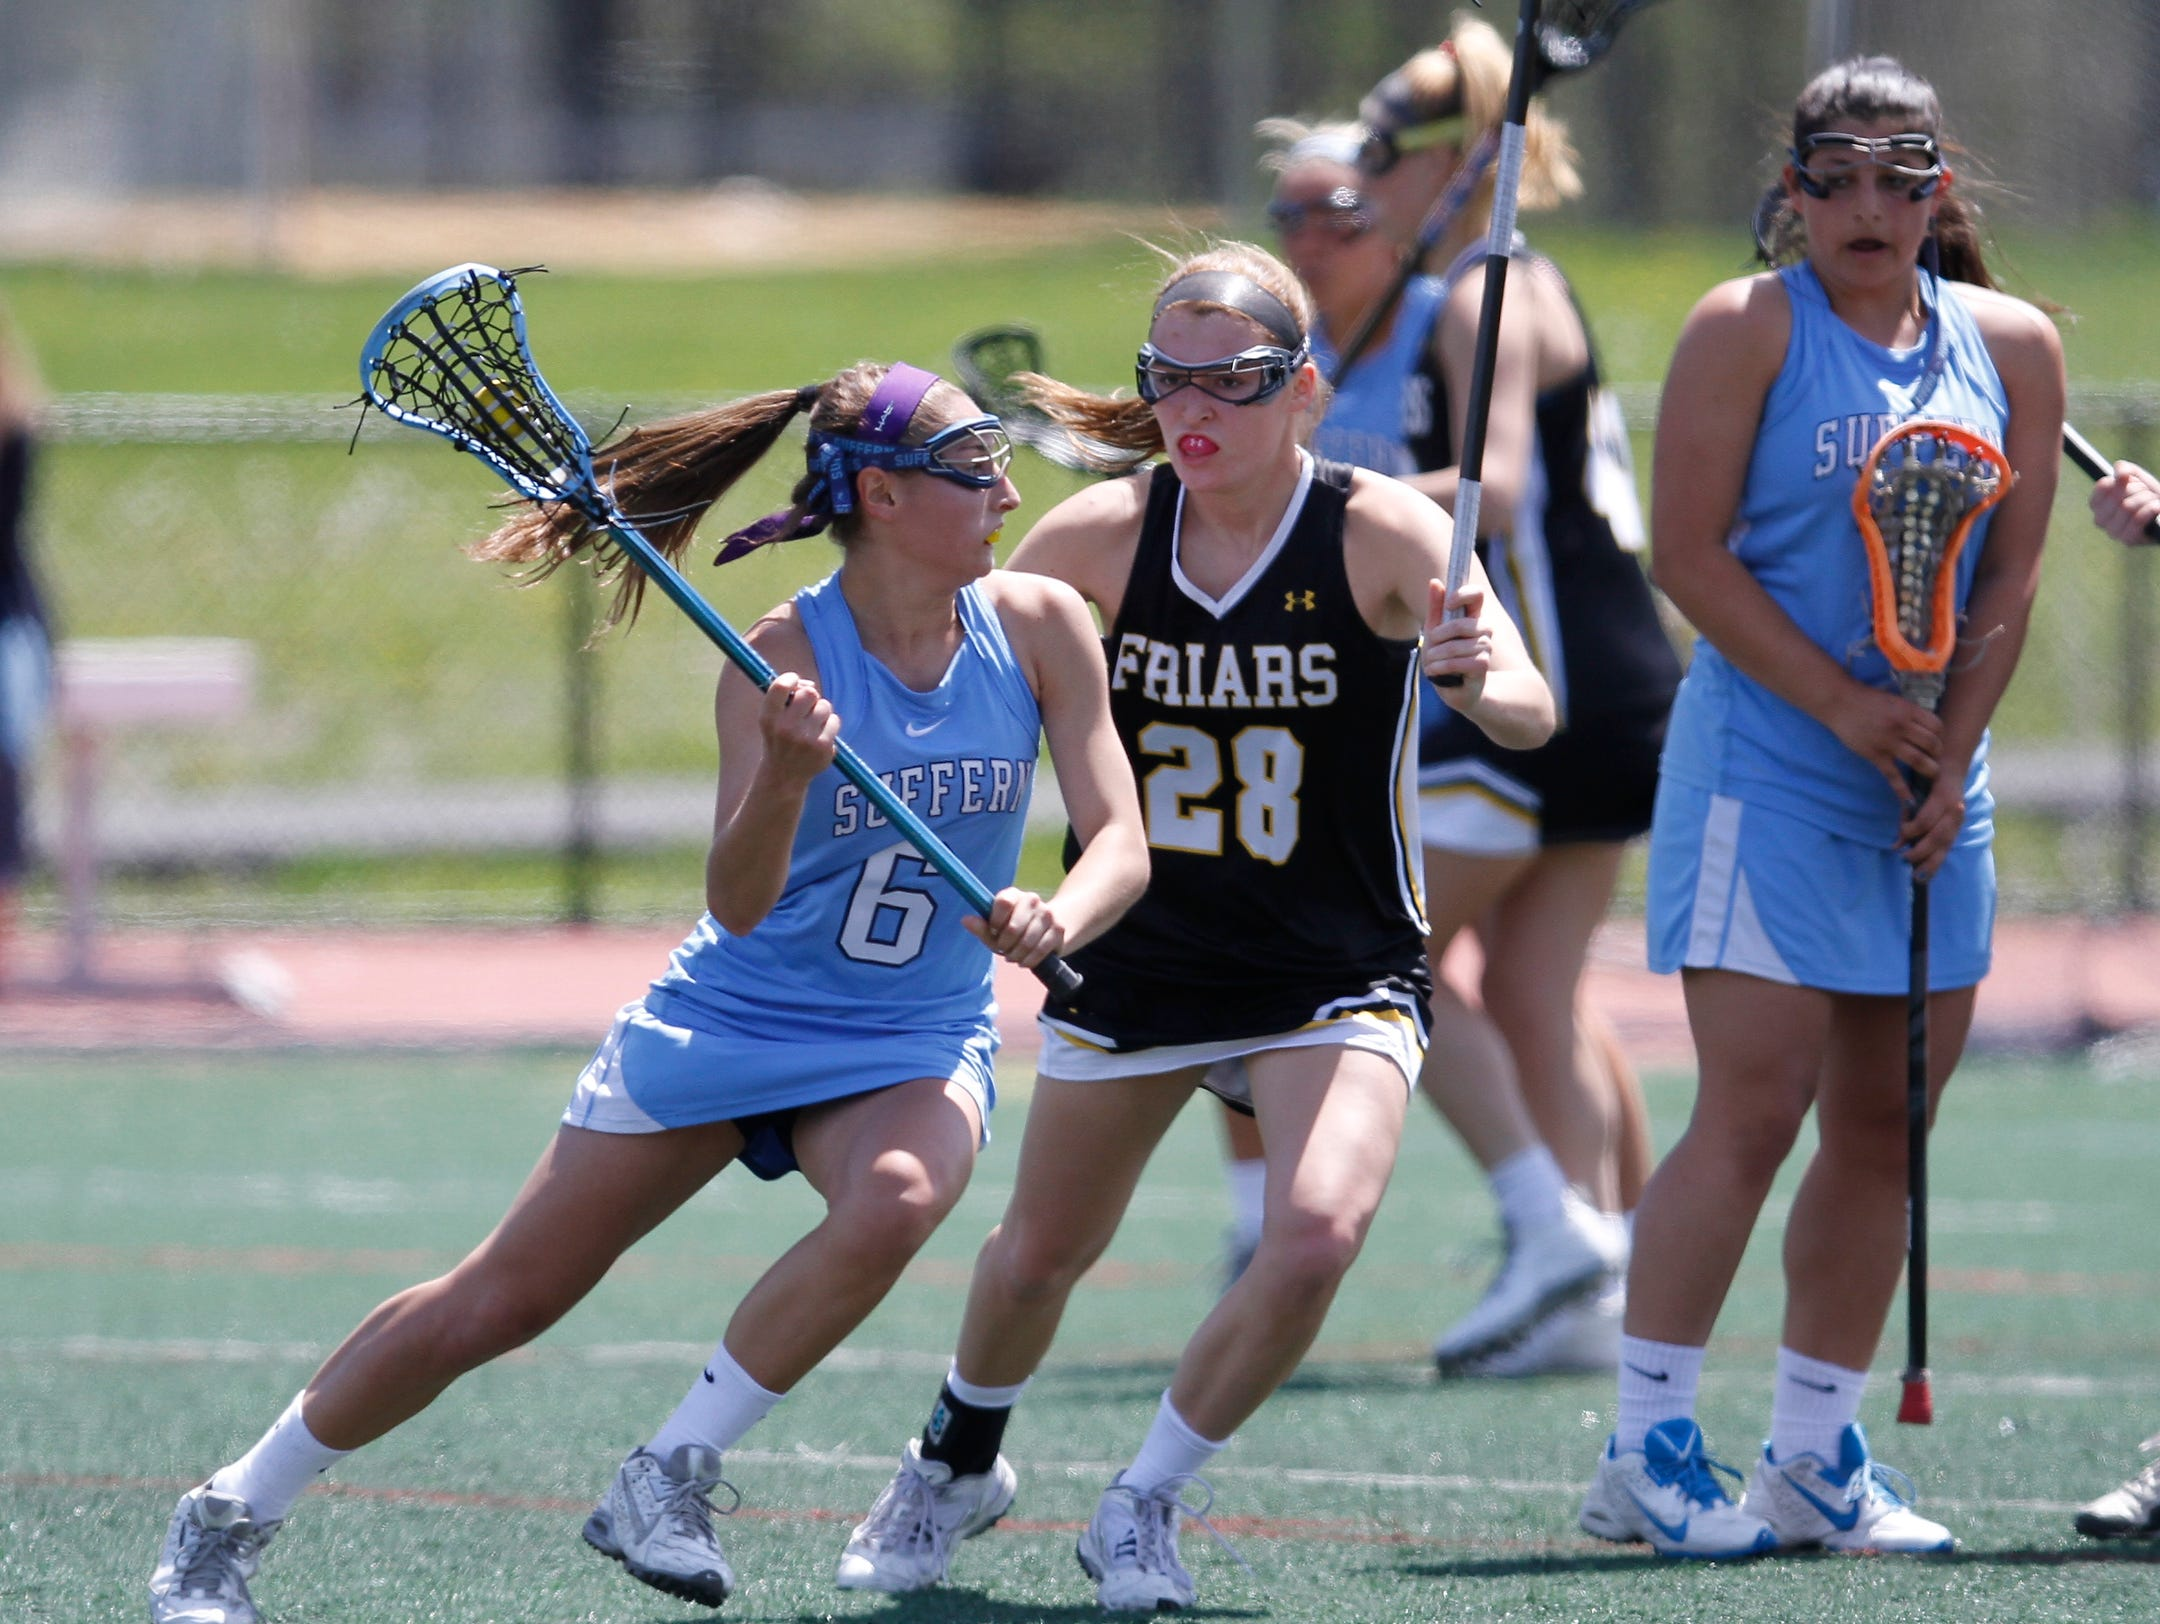 Suffern's Hannah Newman (6) works the ball against a St. Anthony defender during a girls lacrosse game at Suffern Middle School in Suffern on Saturday, April 30, 2016. Suffern won 8-7.